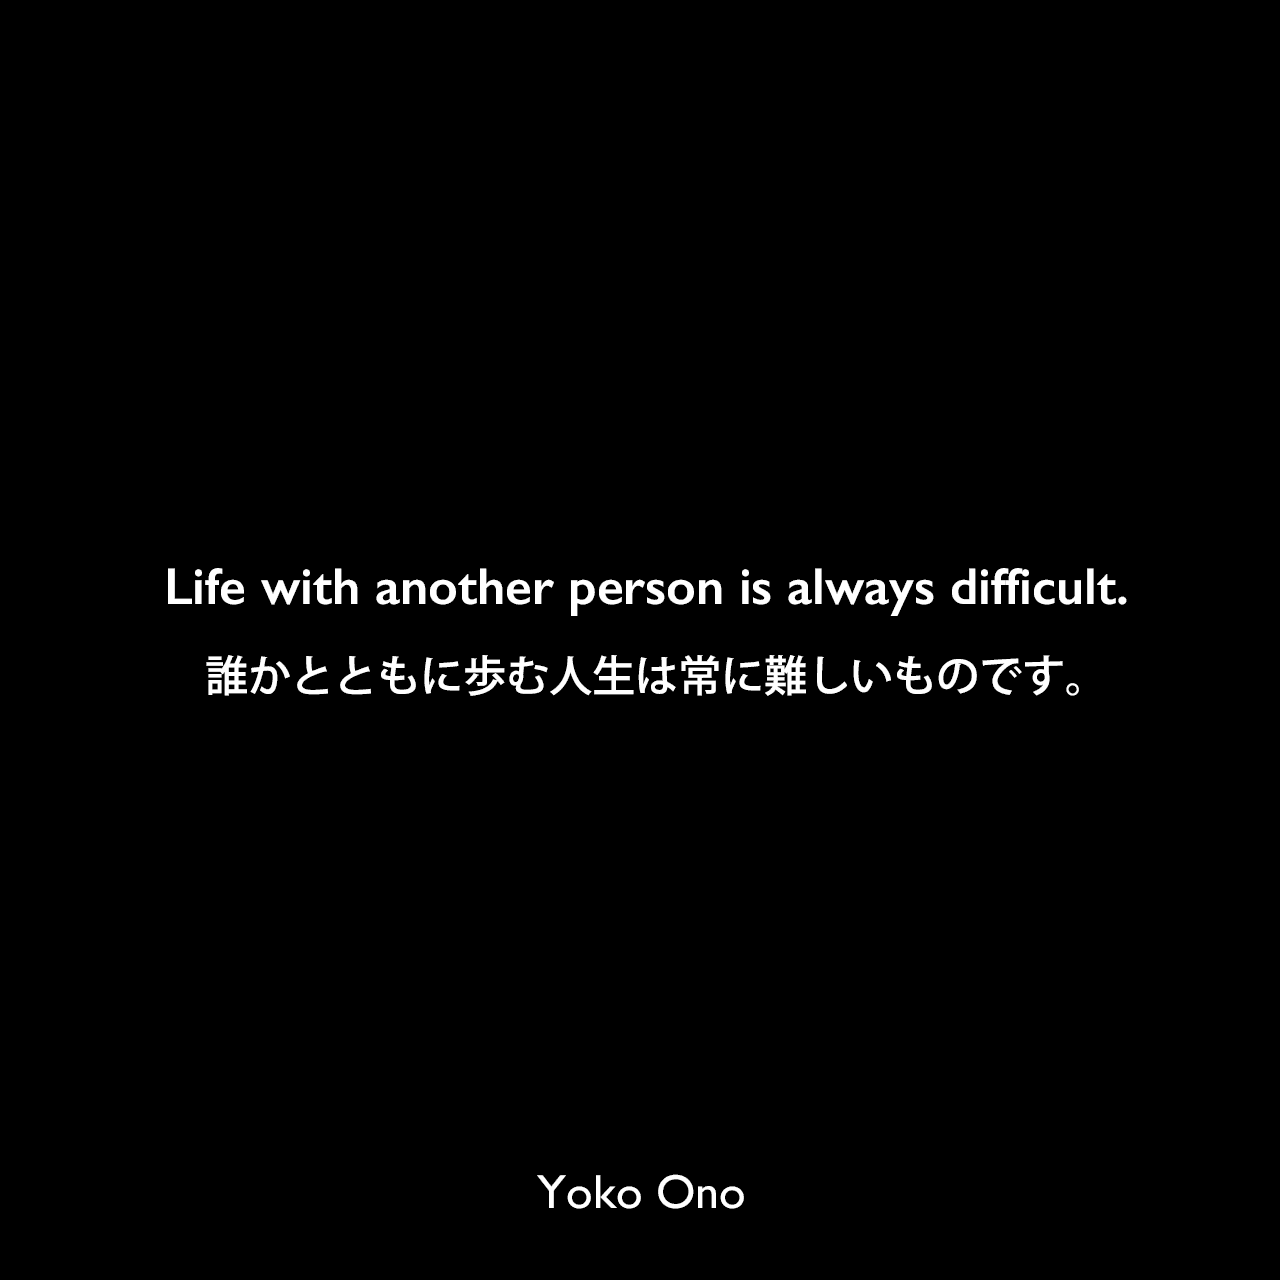 Life with another person is always difficult.誰かとともに歩む人生は常に難しいものです。